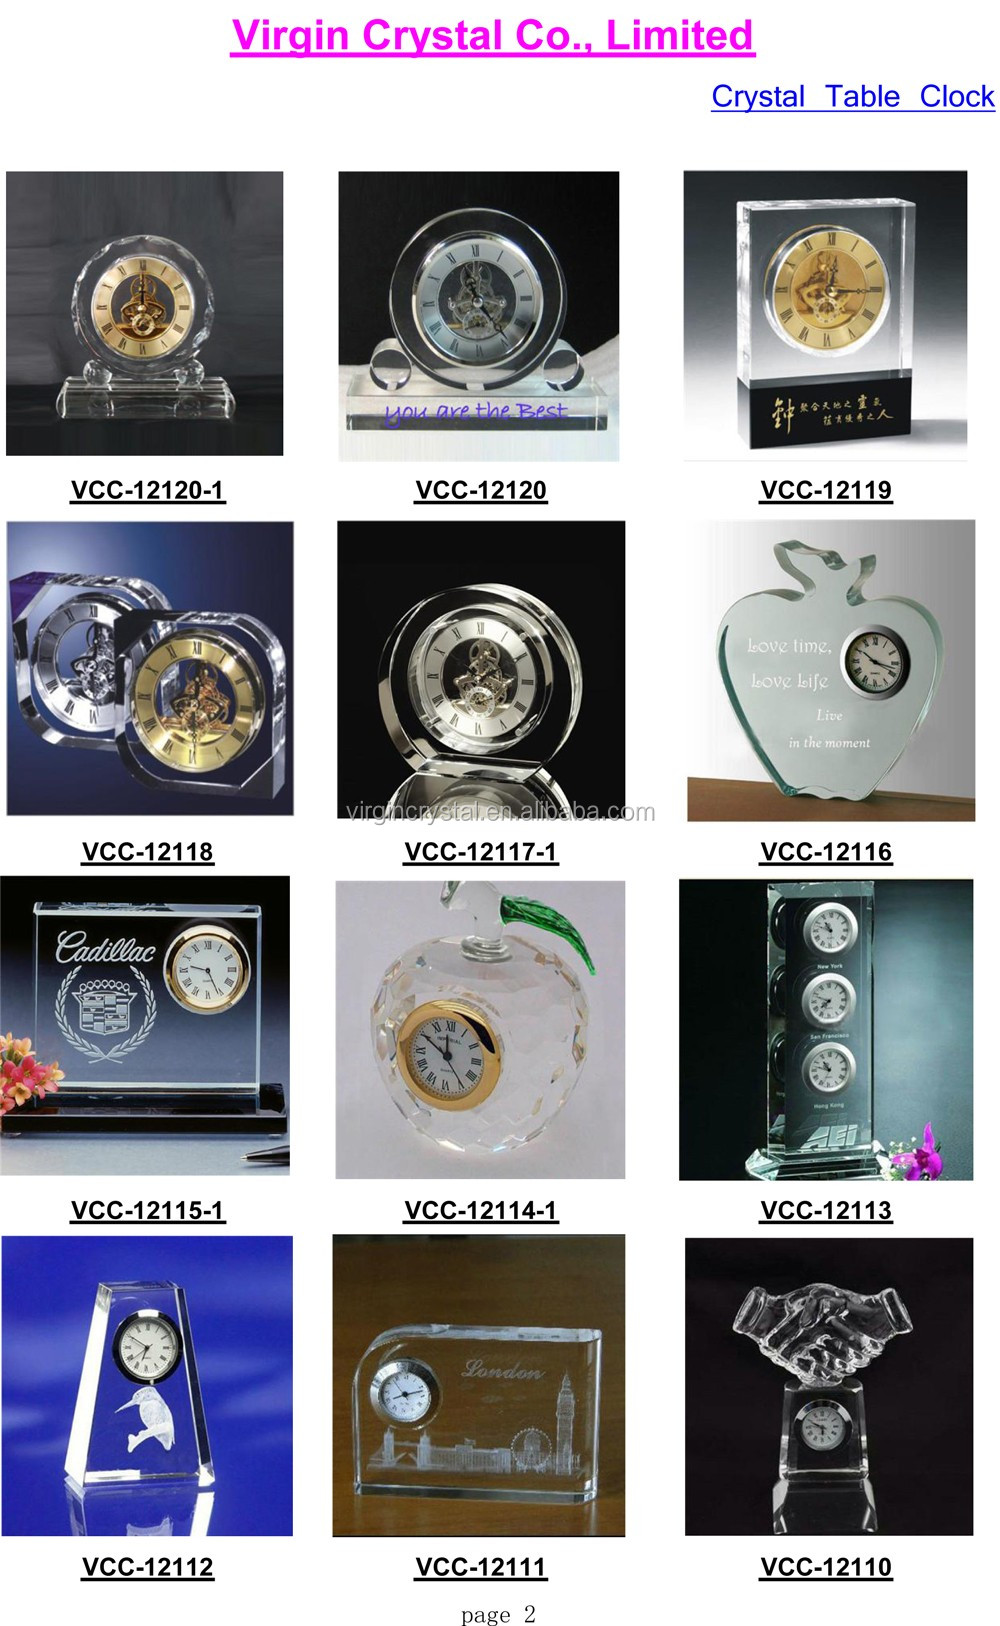 2016 Crystal Table Clock and Mechanical clock Catalog-2.jpg